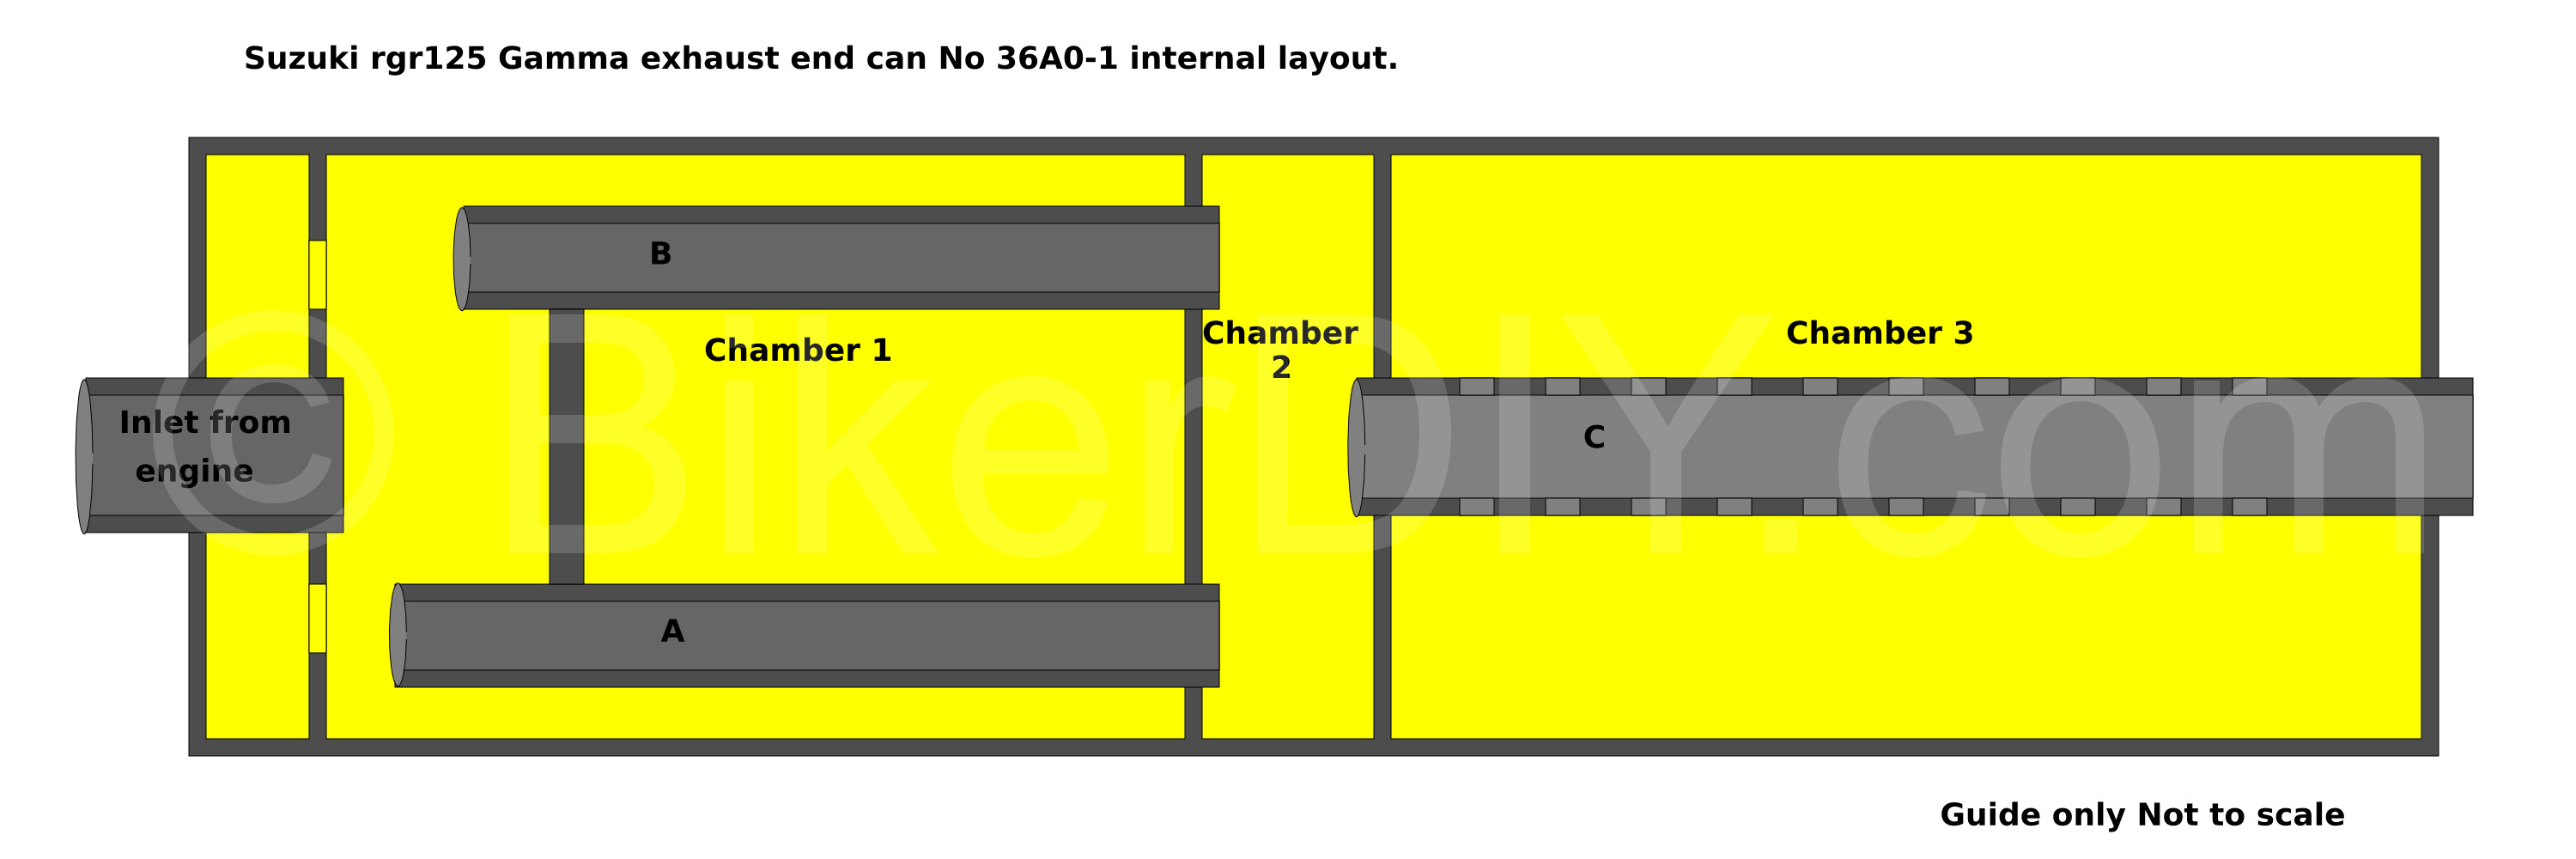 rgr125_end_can_layout_1